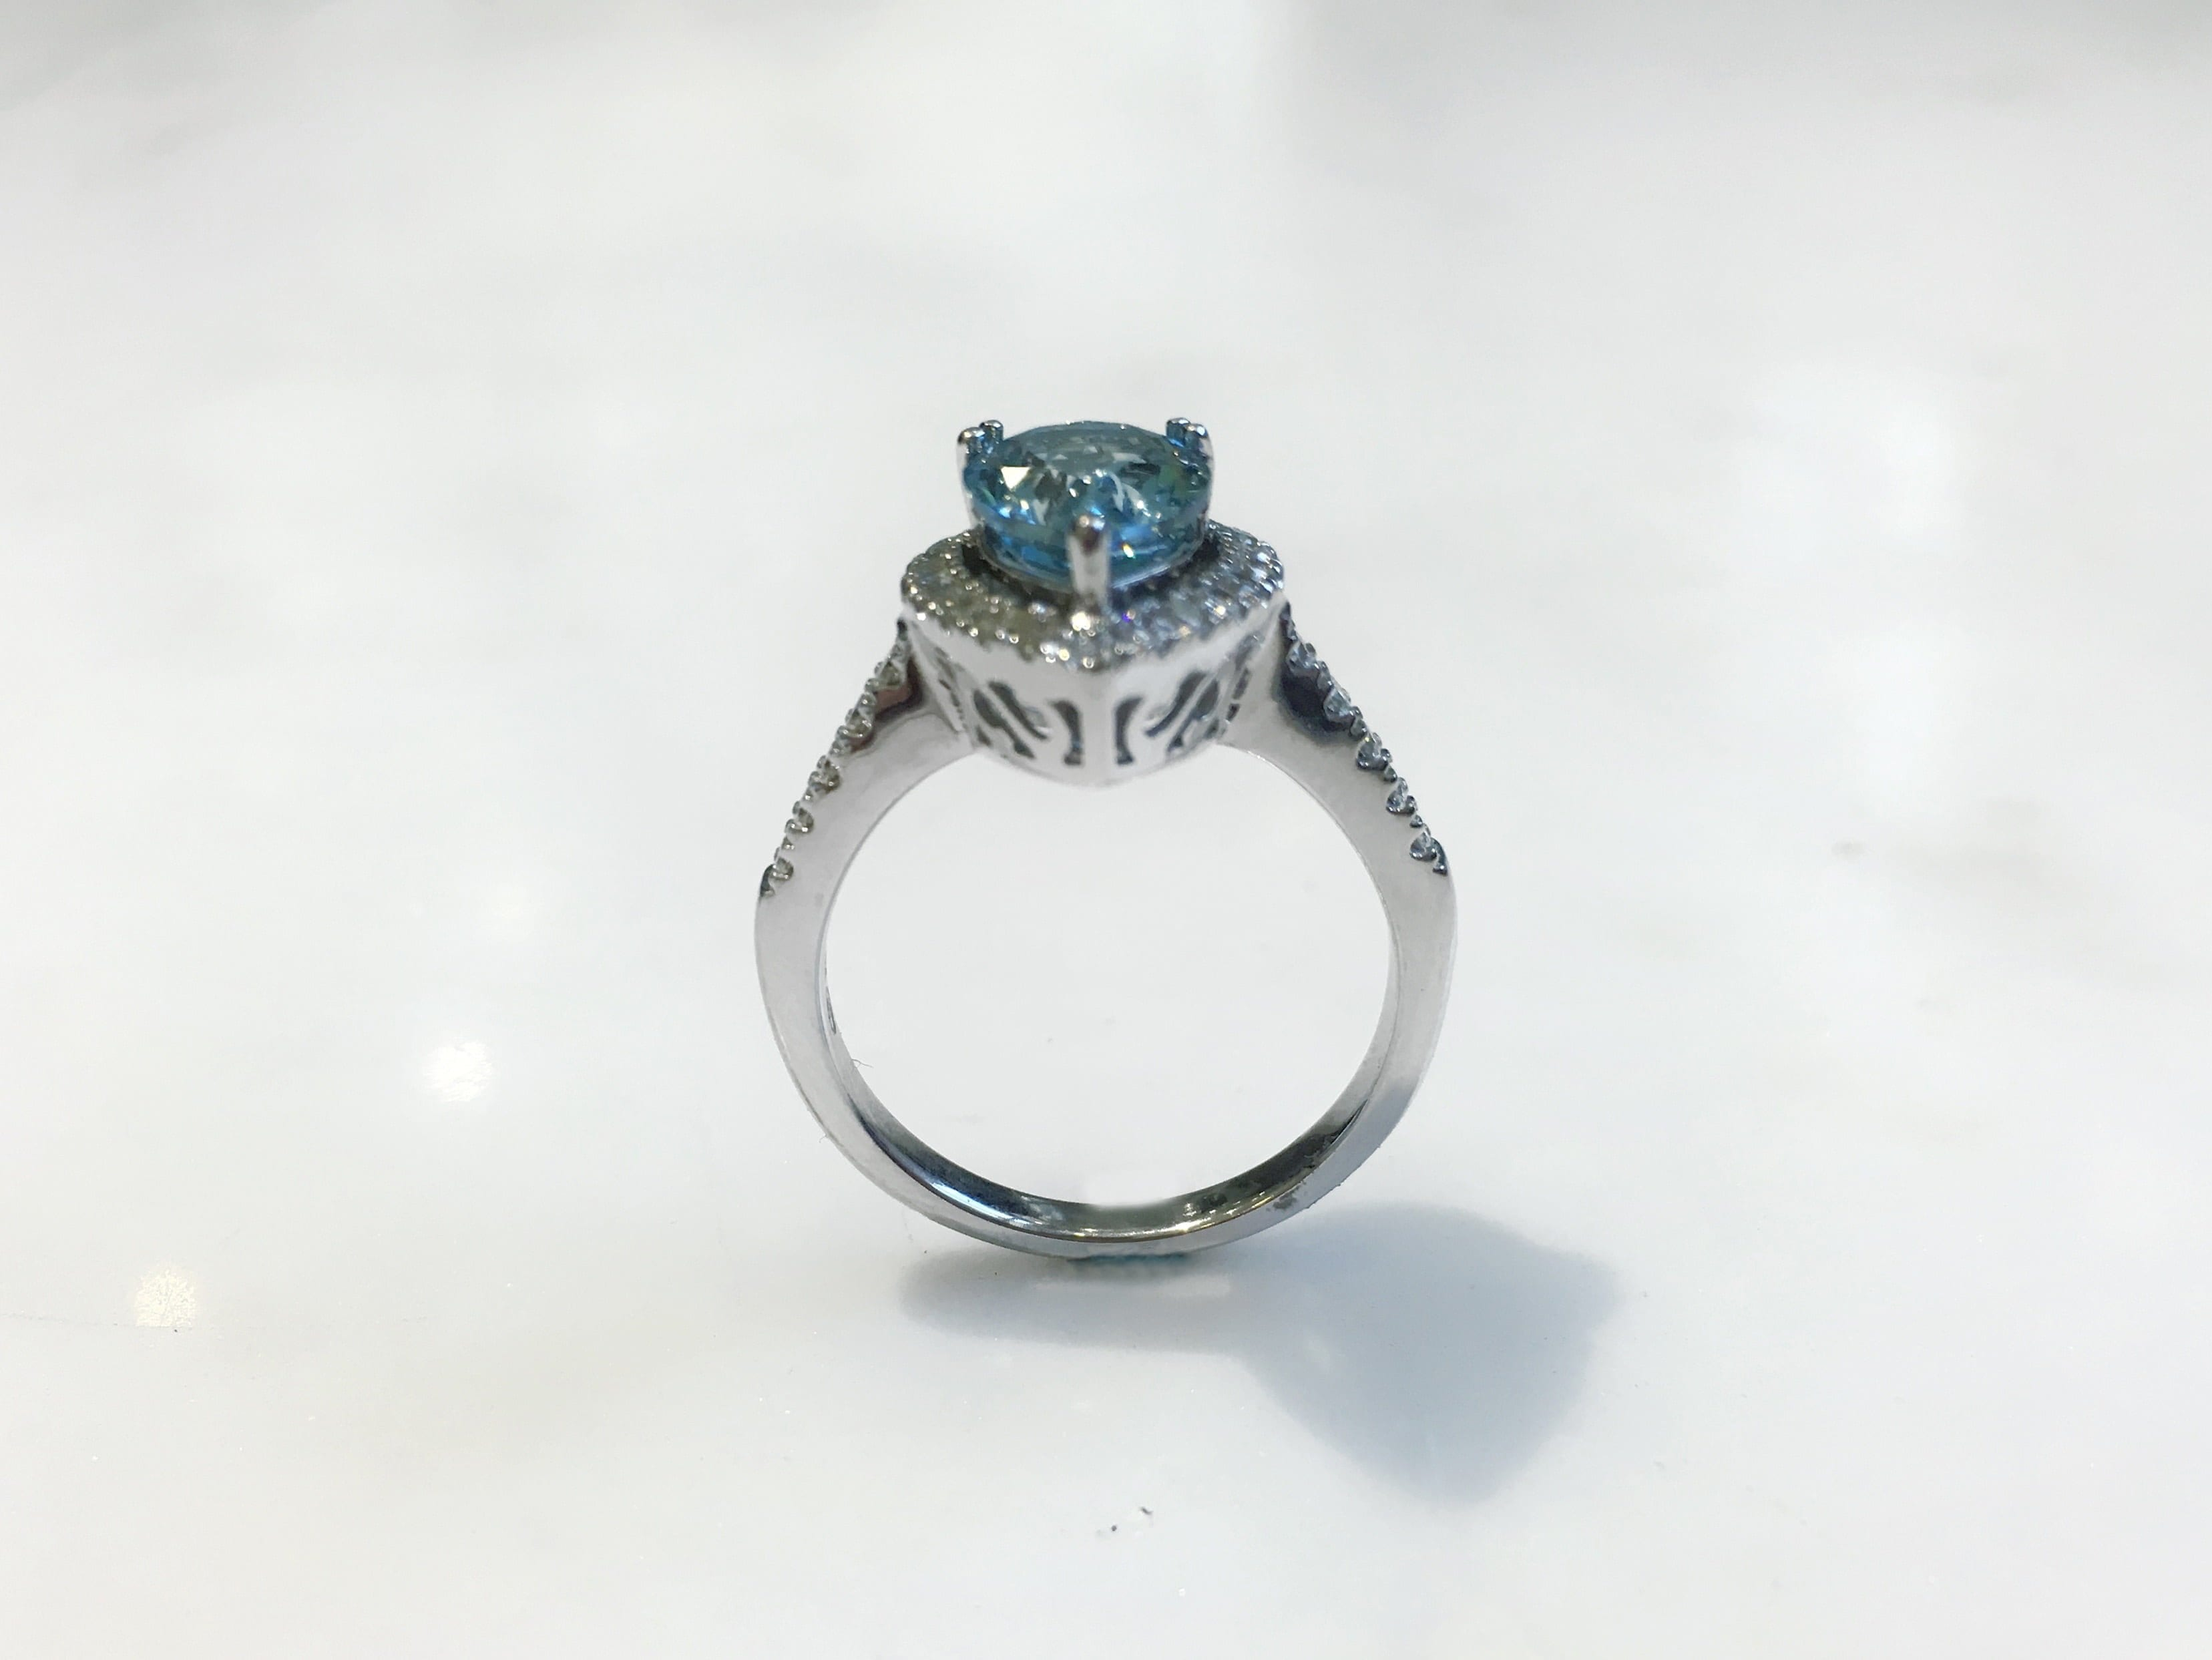 anniversary alysha palladium natural gold aquamarine blue engagement silver promise ring sterling yellow aa rose simple products jewellery whitfield white